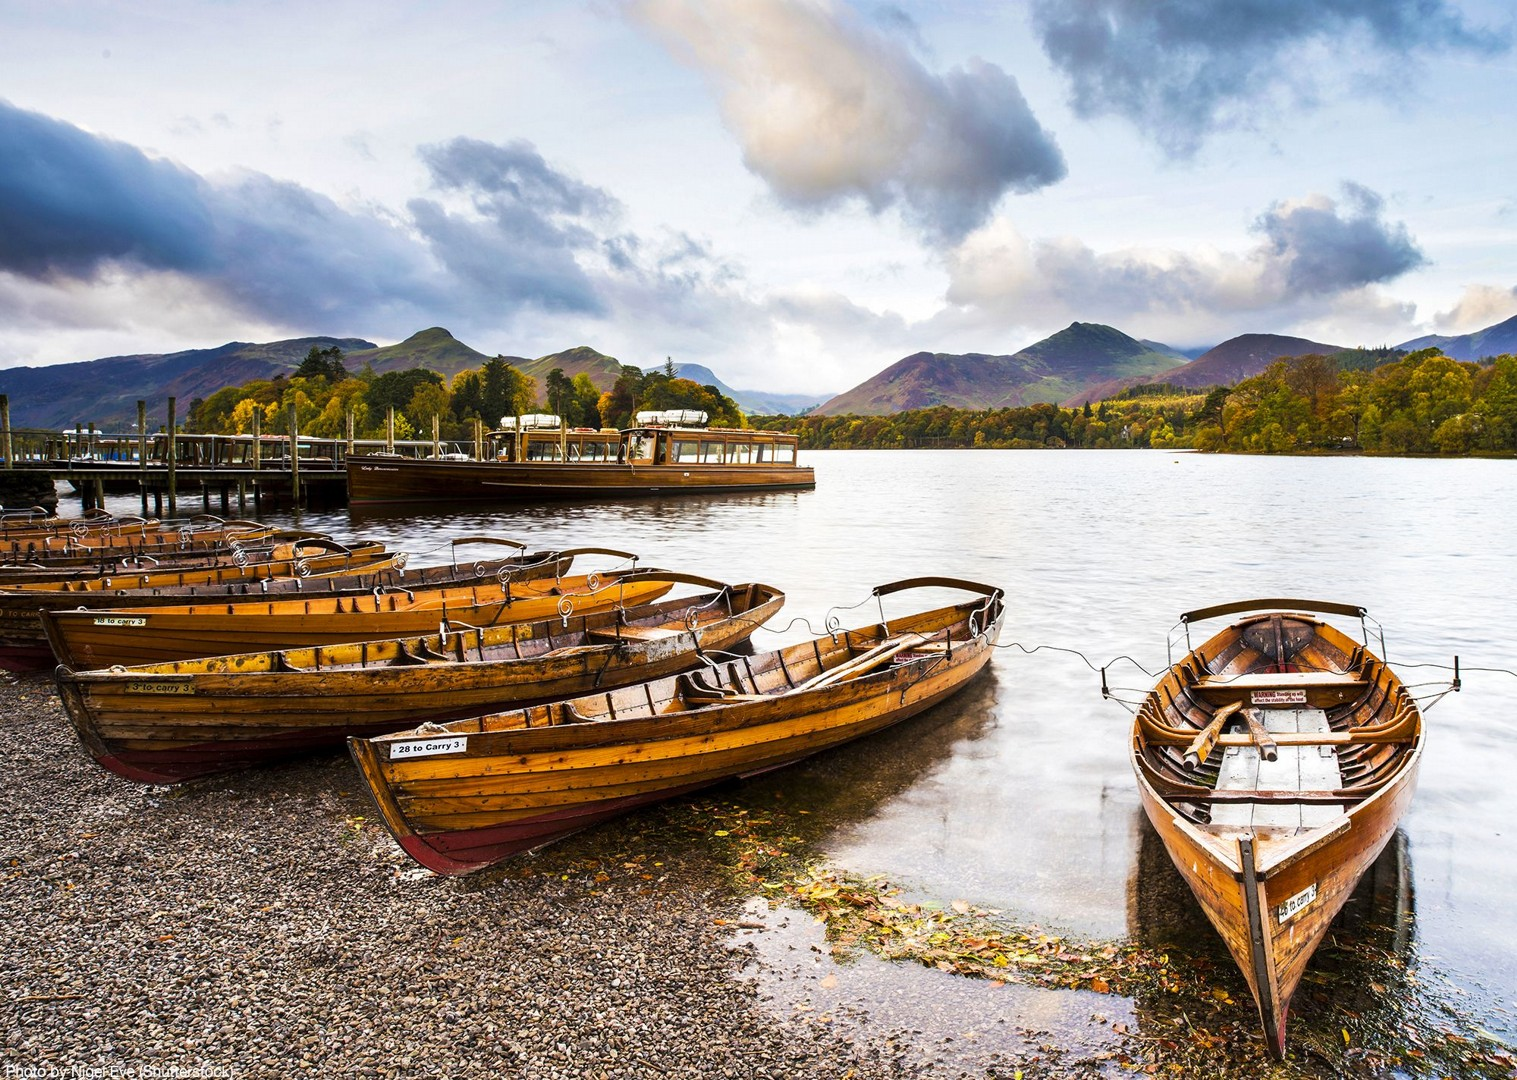 shutterstock_1097405654-2.jpg - UK - Lake District - Derwent Water - Guided Leisure Cycling Holiday - Leisure Cycling